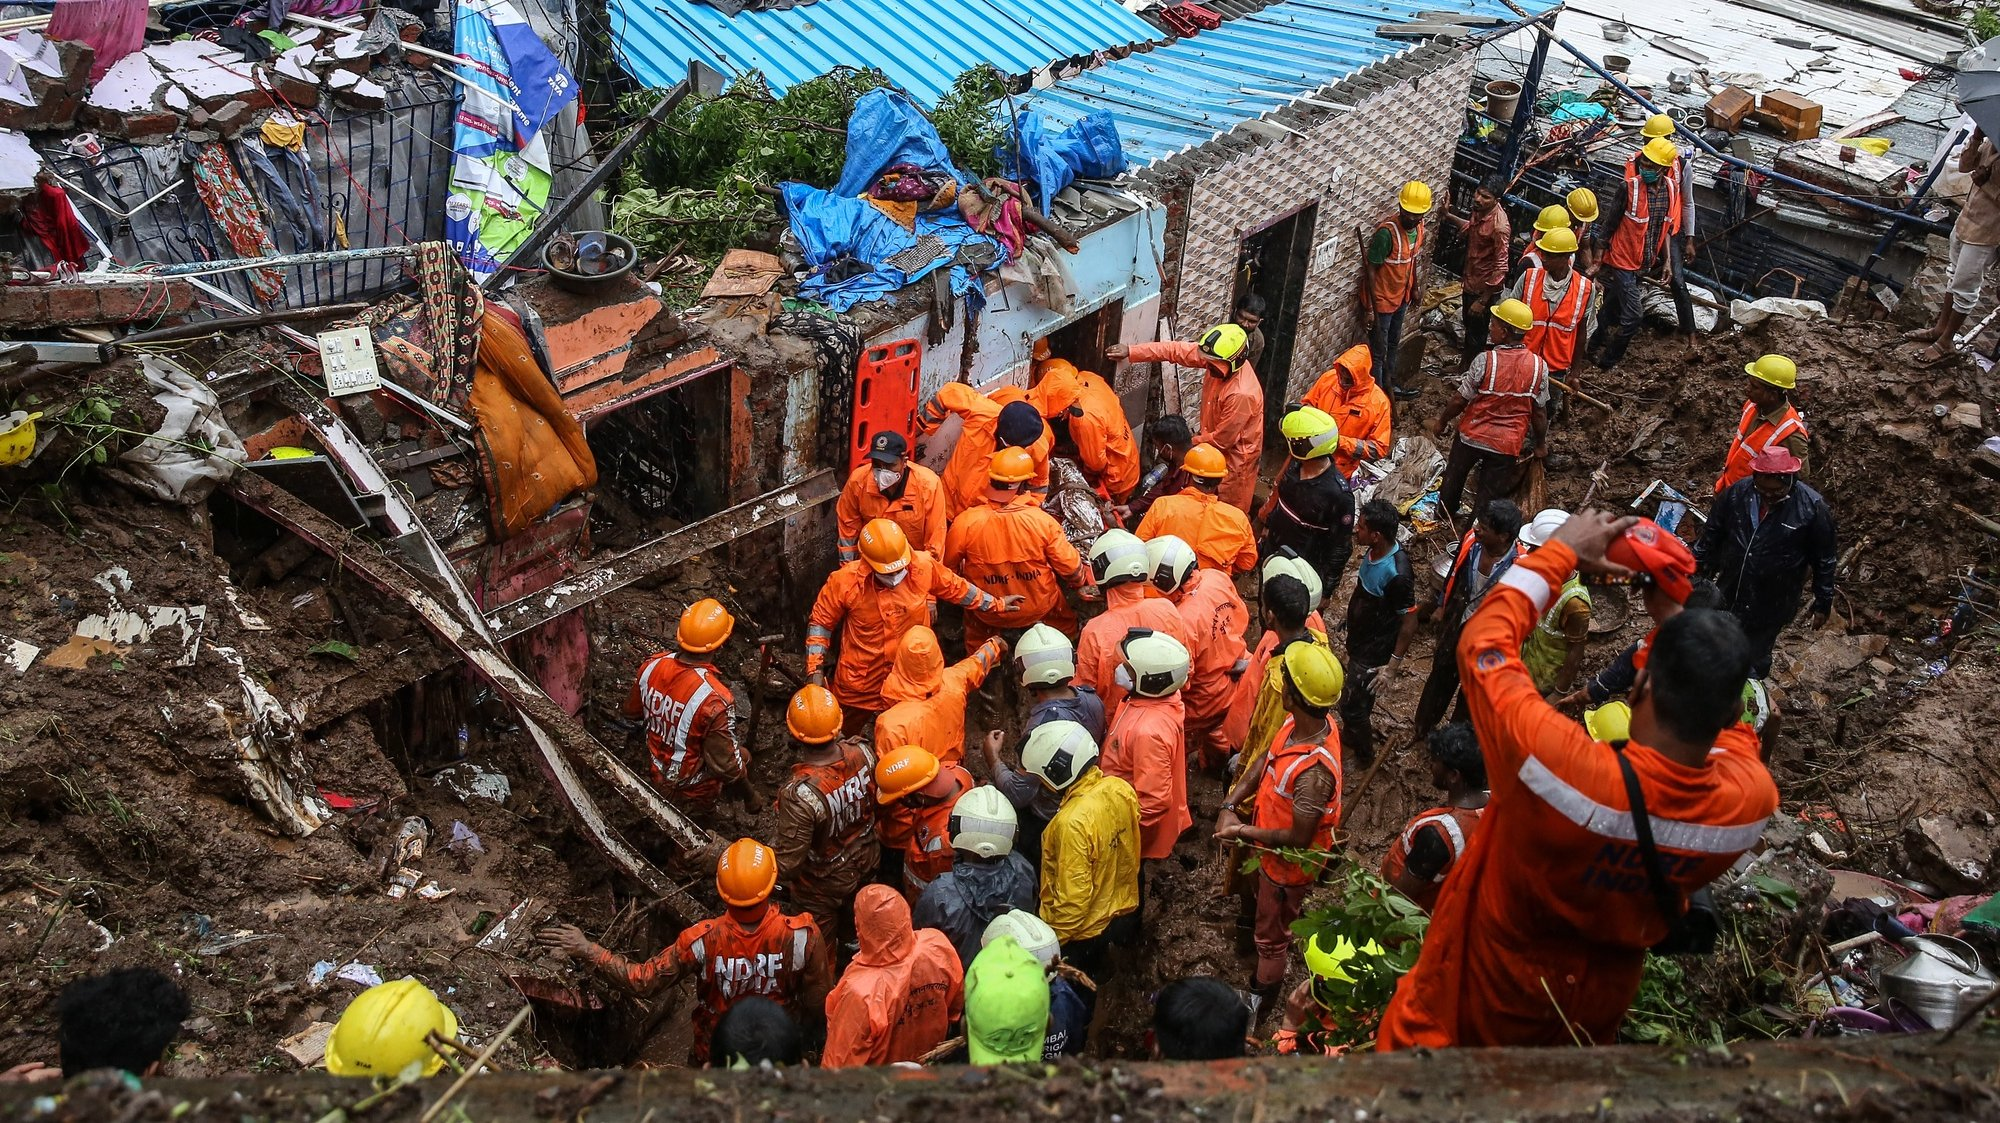 epa09352181 National Disaster Response Force (NDRF) personnel recover dead body from the rubble during a rescue operation in the aftermath of a landslide at a Bharat Nagar slum in Chembur, Mumbai, India, 18 July 2021. According to the police and municipal officials at least 22 people are dead and several others injured after a wall collapsed on some shanties in Chembur's Bharat Nagar area due to a landslide after heavy rainfall in the city.  EPA/DIVYAKANT SOLANKI